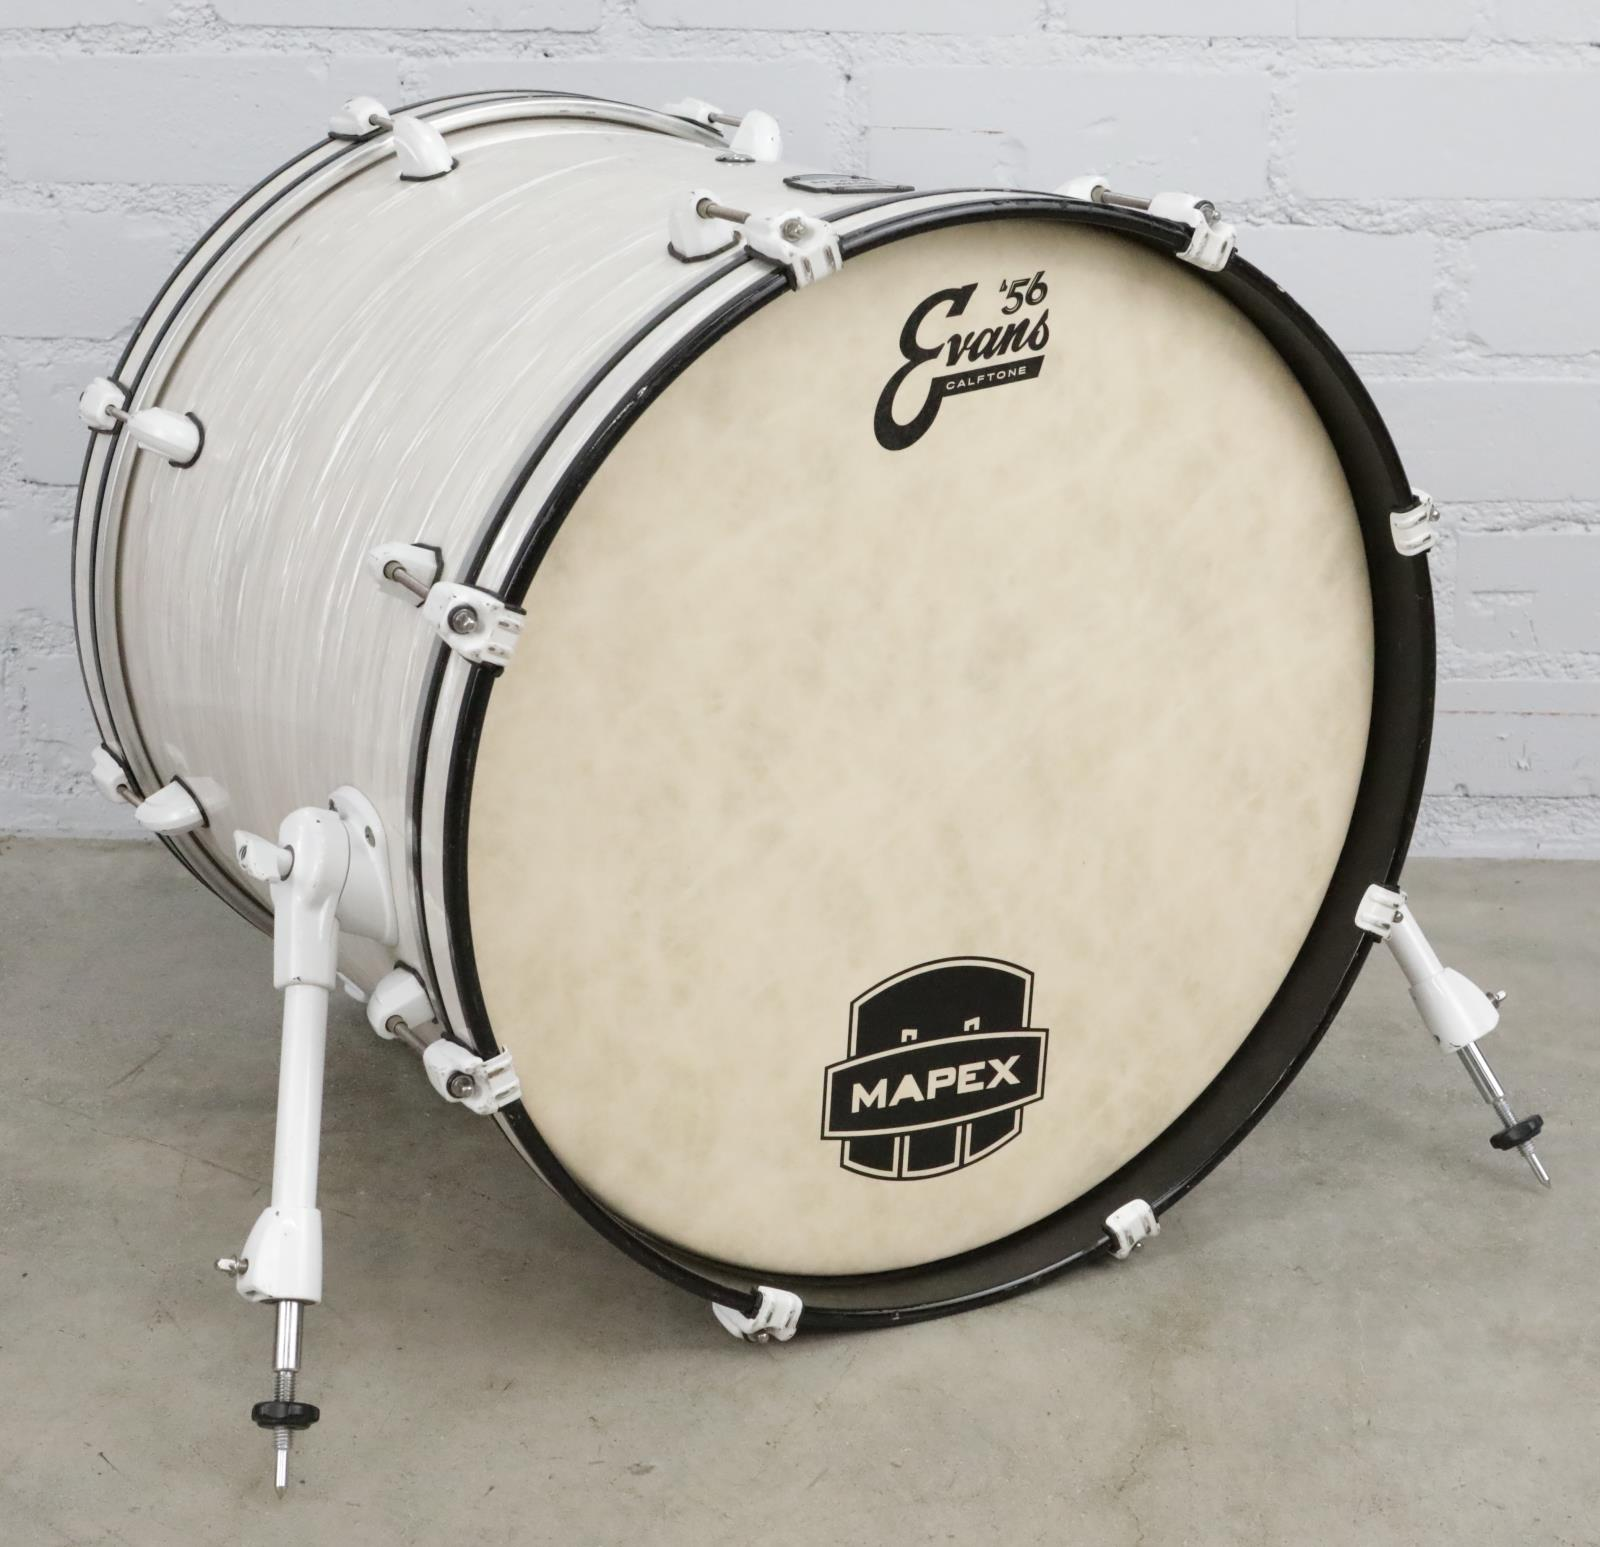 "Mapex MyDentity 20"" x 18"" Kick Bass Drum White Ripple Pearl #41073"